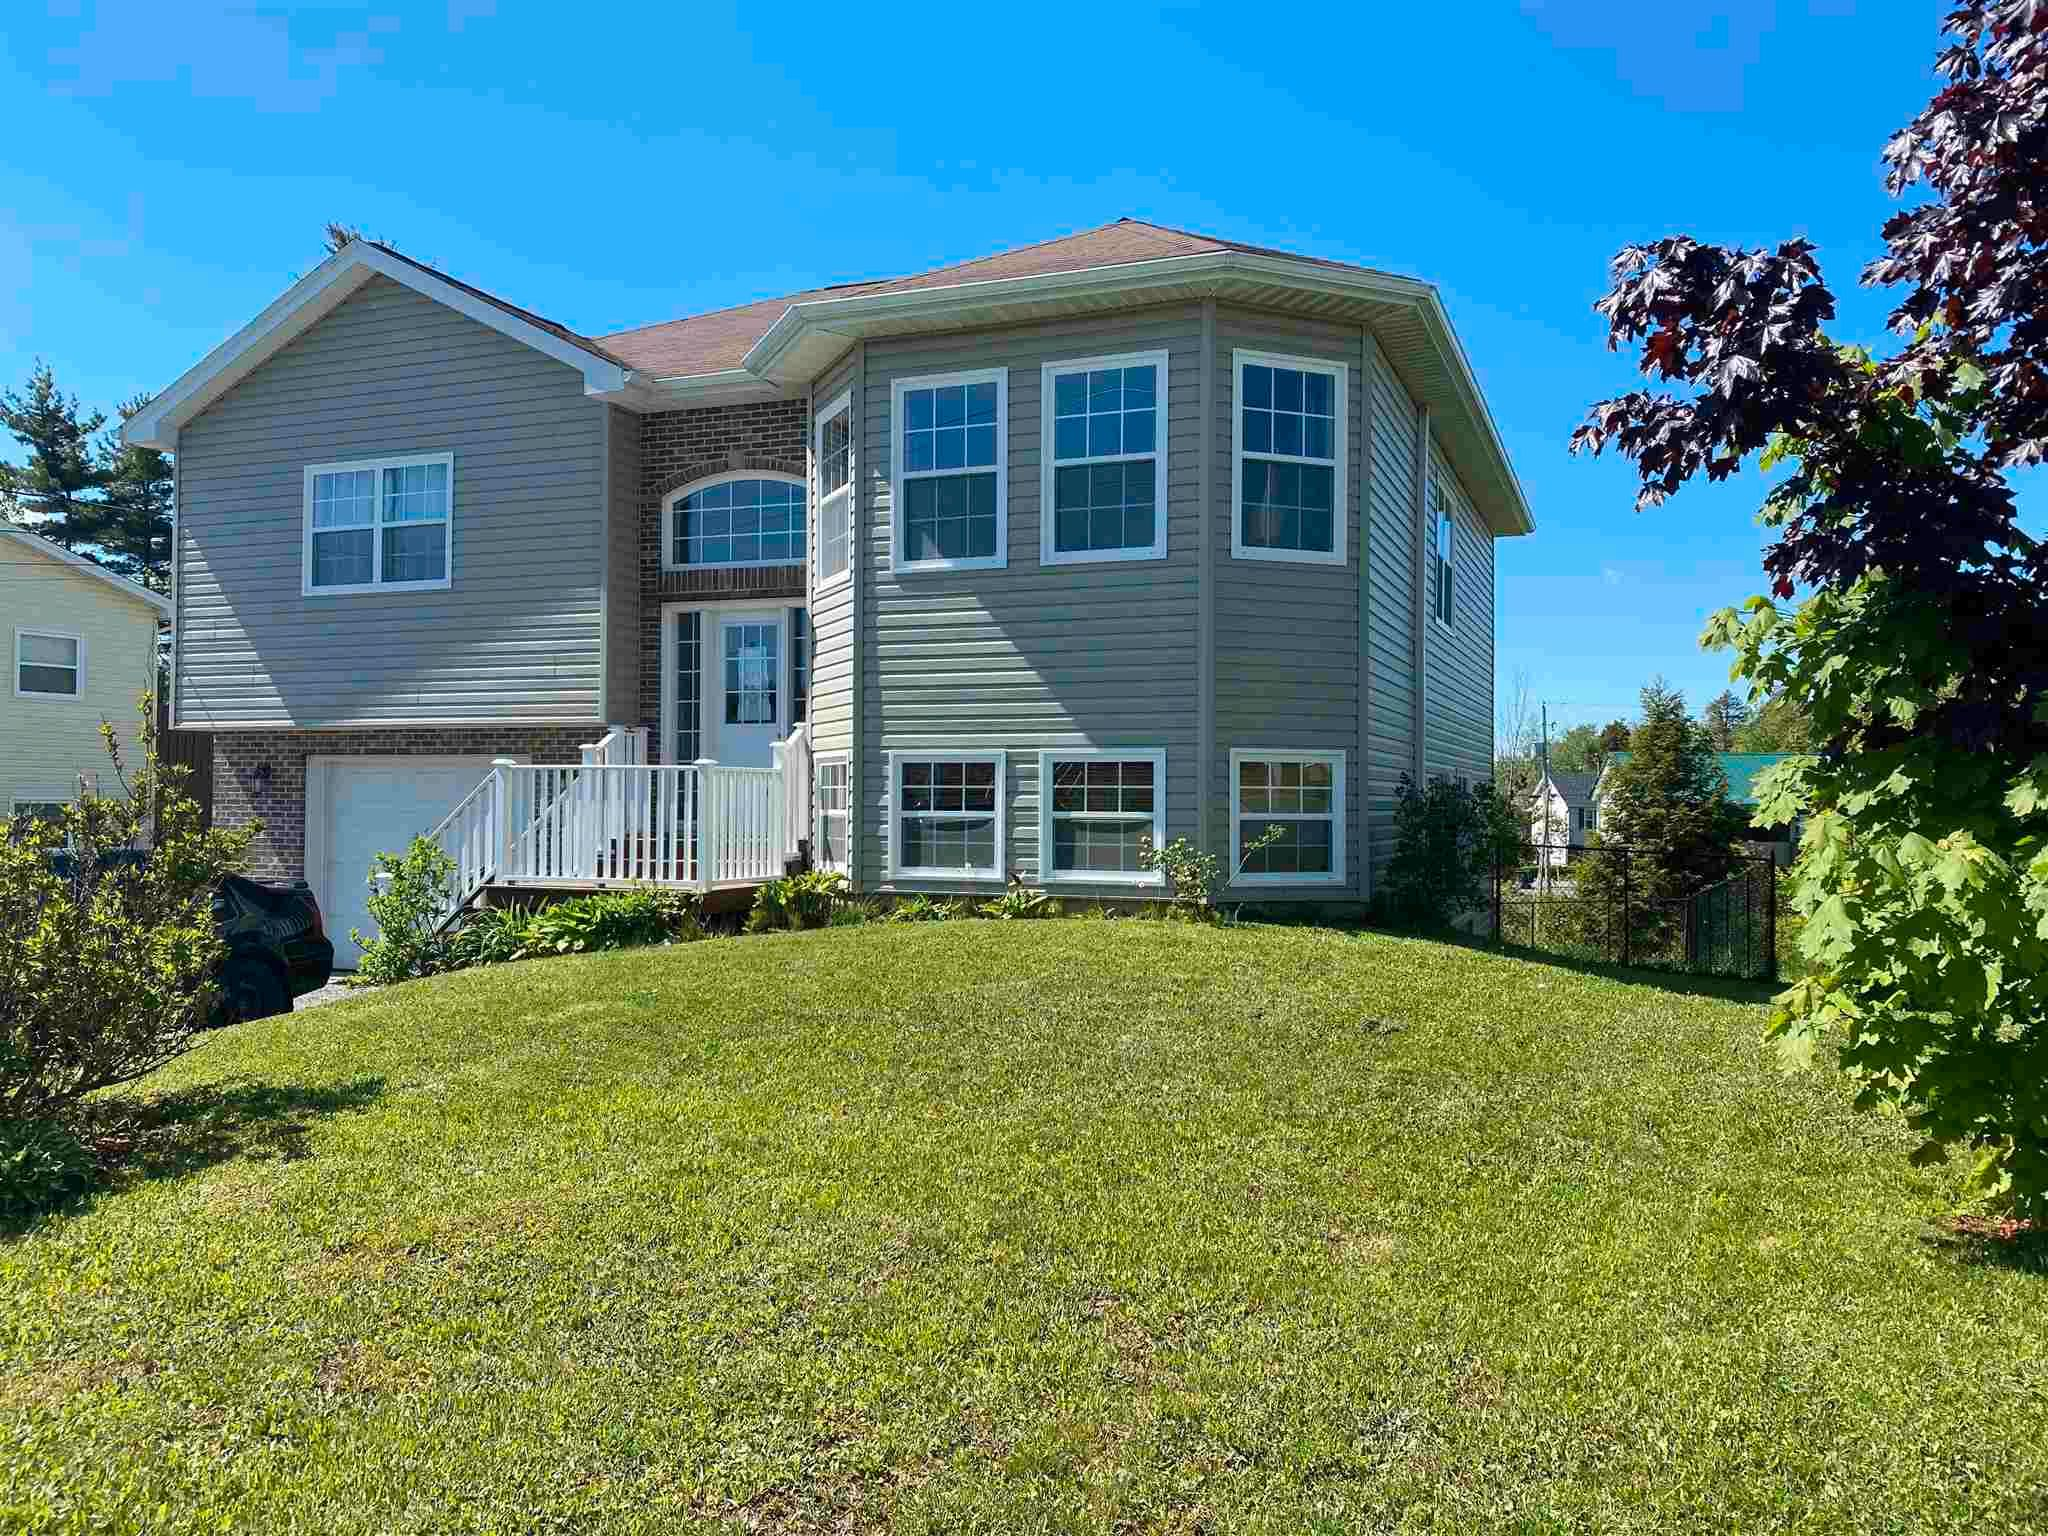 Main Photo: 9 Lilian Court in Elmsdale: 105-East Hants/Colchester West Residential for sale (Halifax-Dartmouth)  : MLS®# 202113734